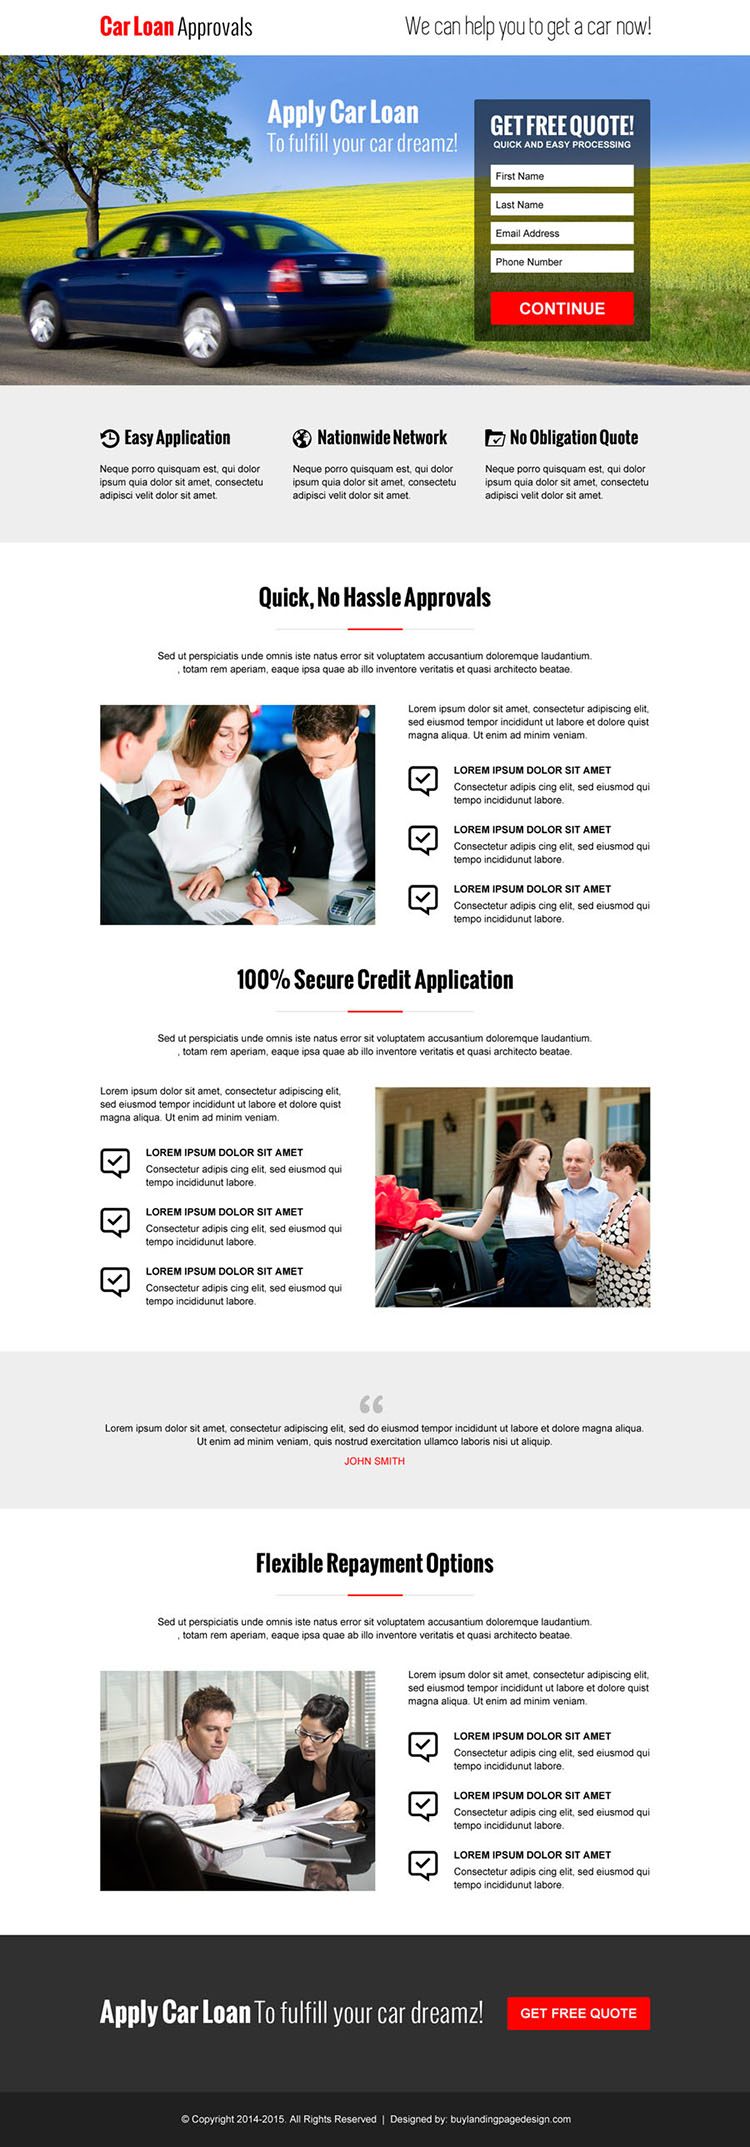 clean and converting car loan approval lead capture landing page design